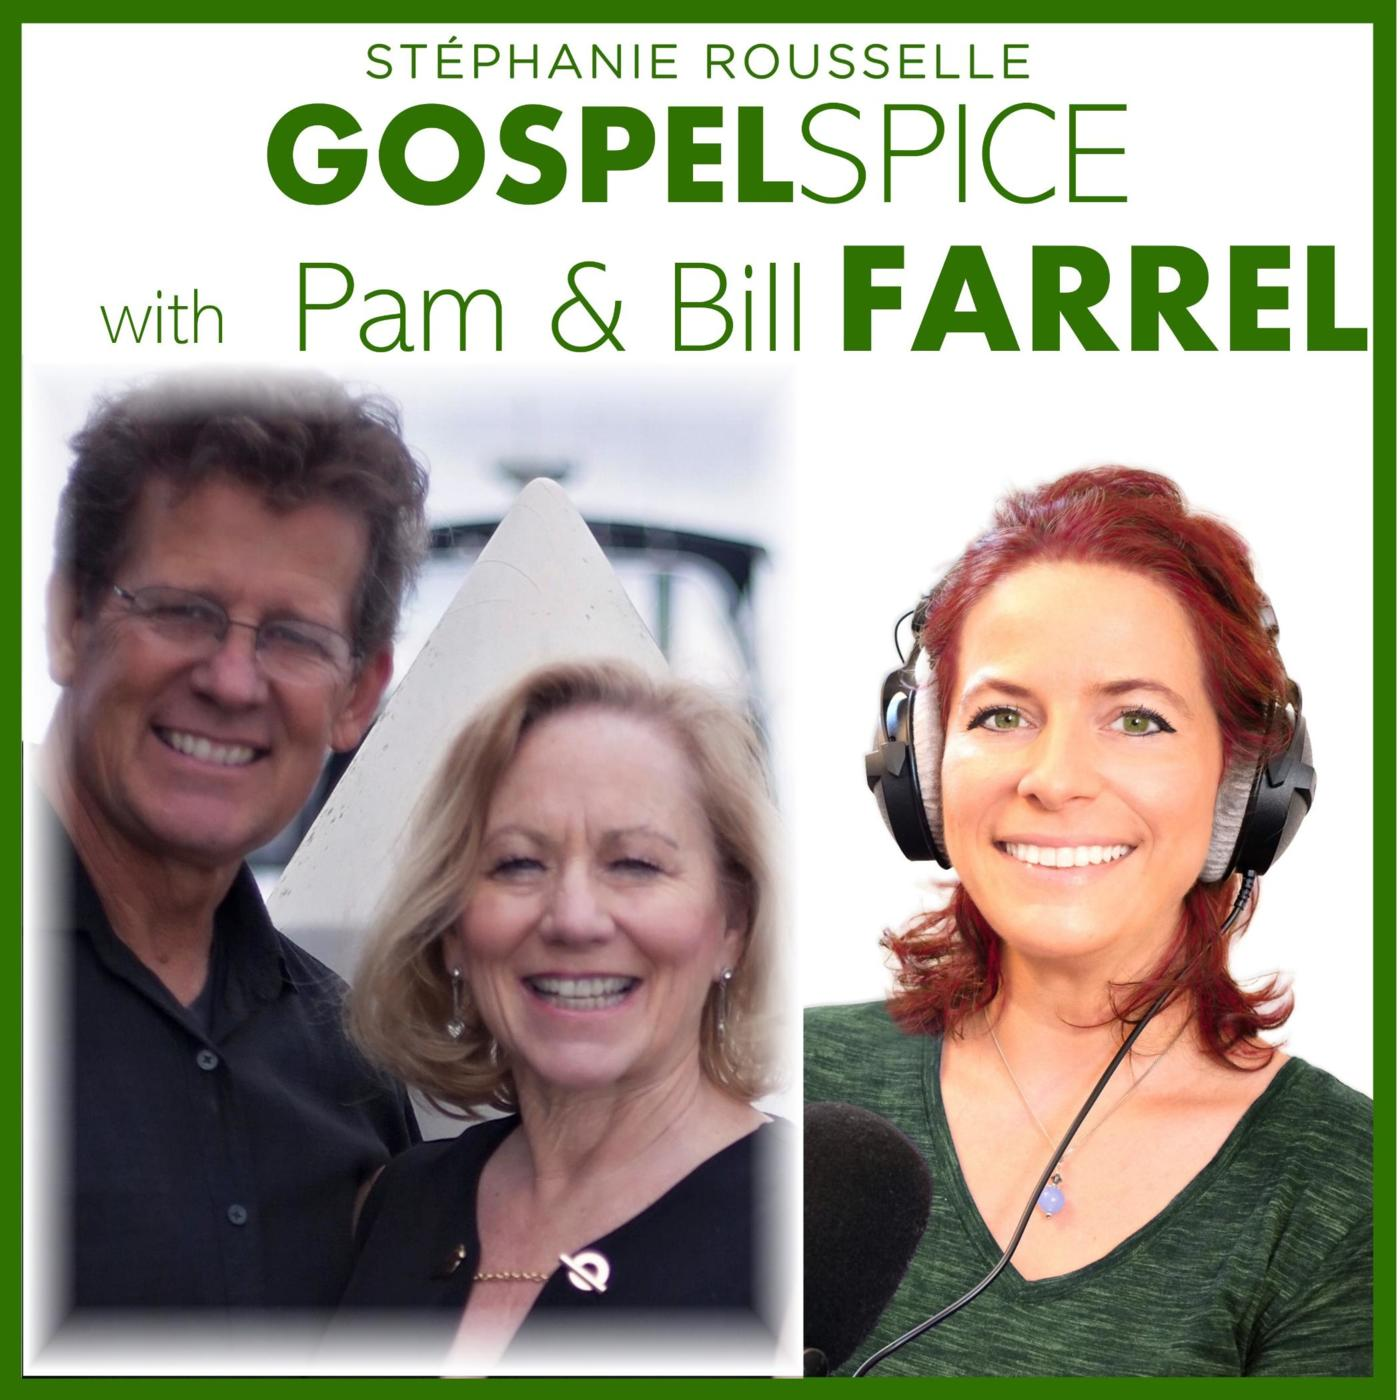 Spice up your marriage! with Bill & Pam Farrel